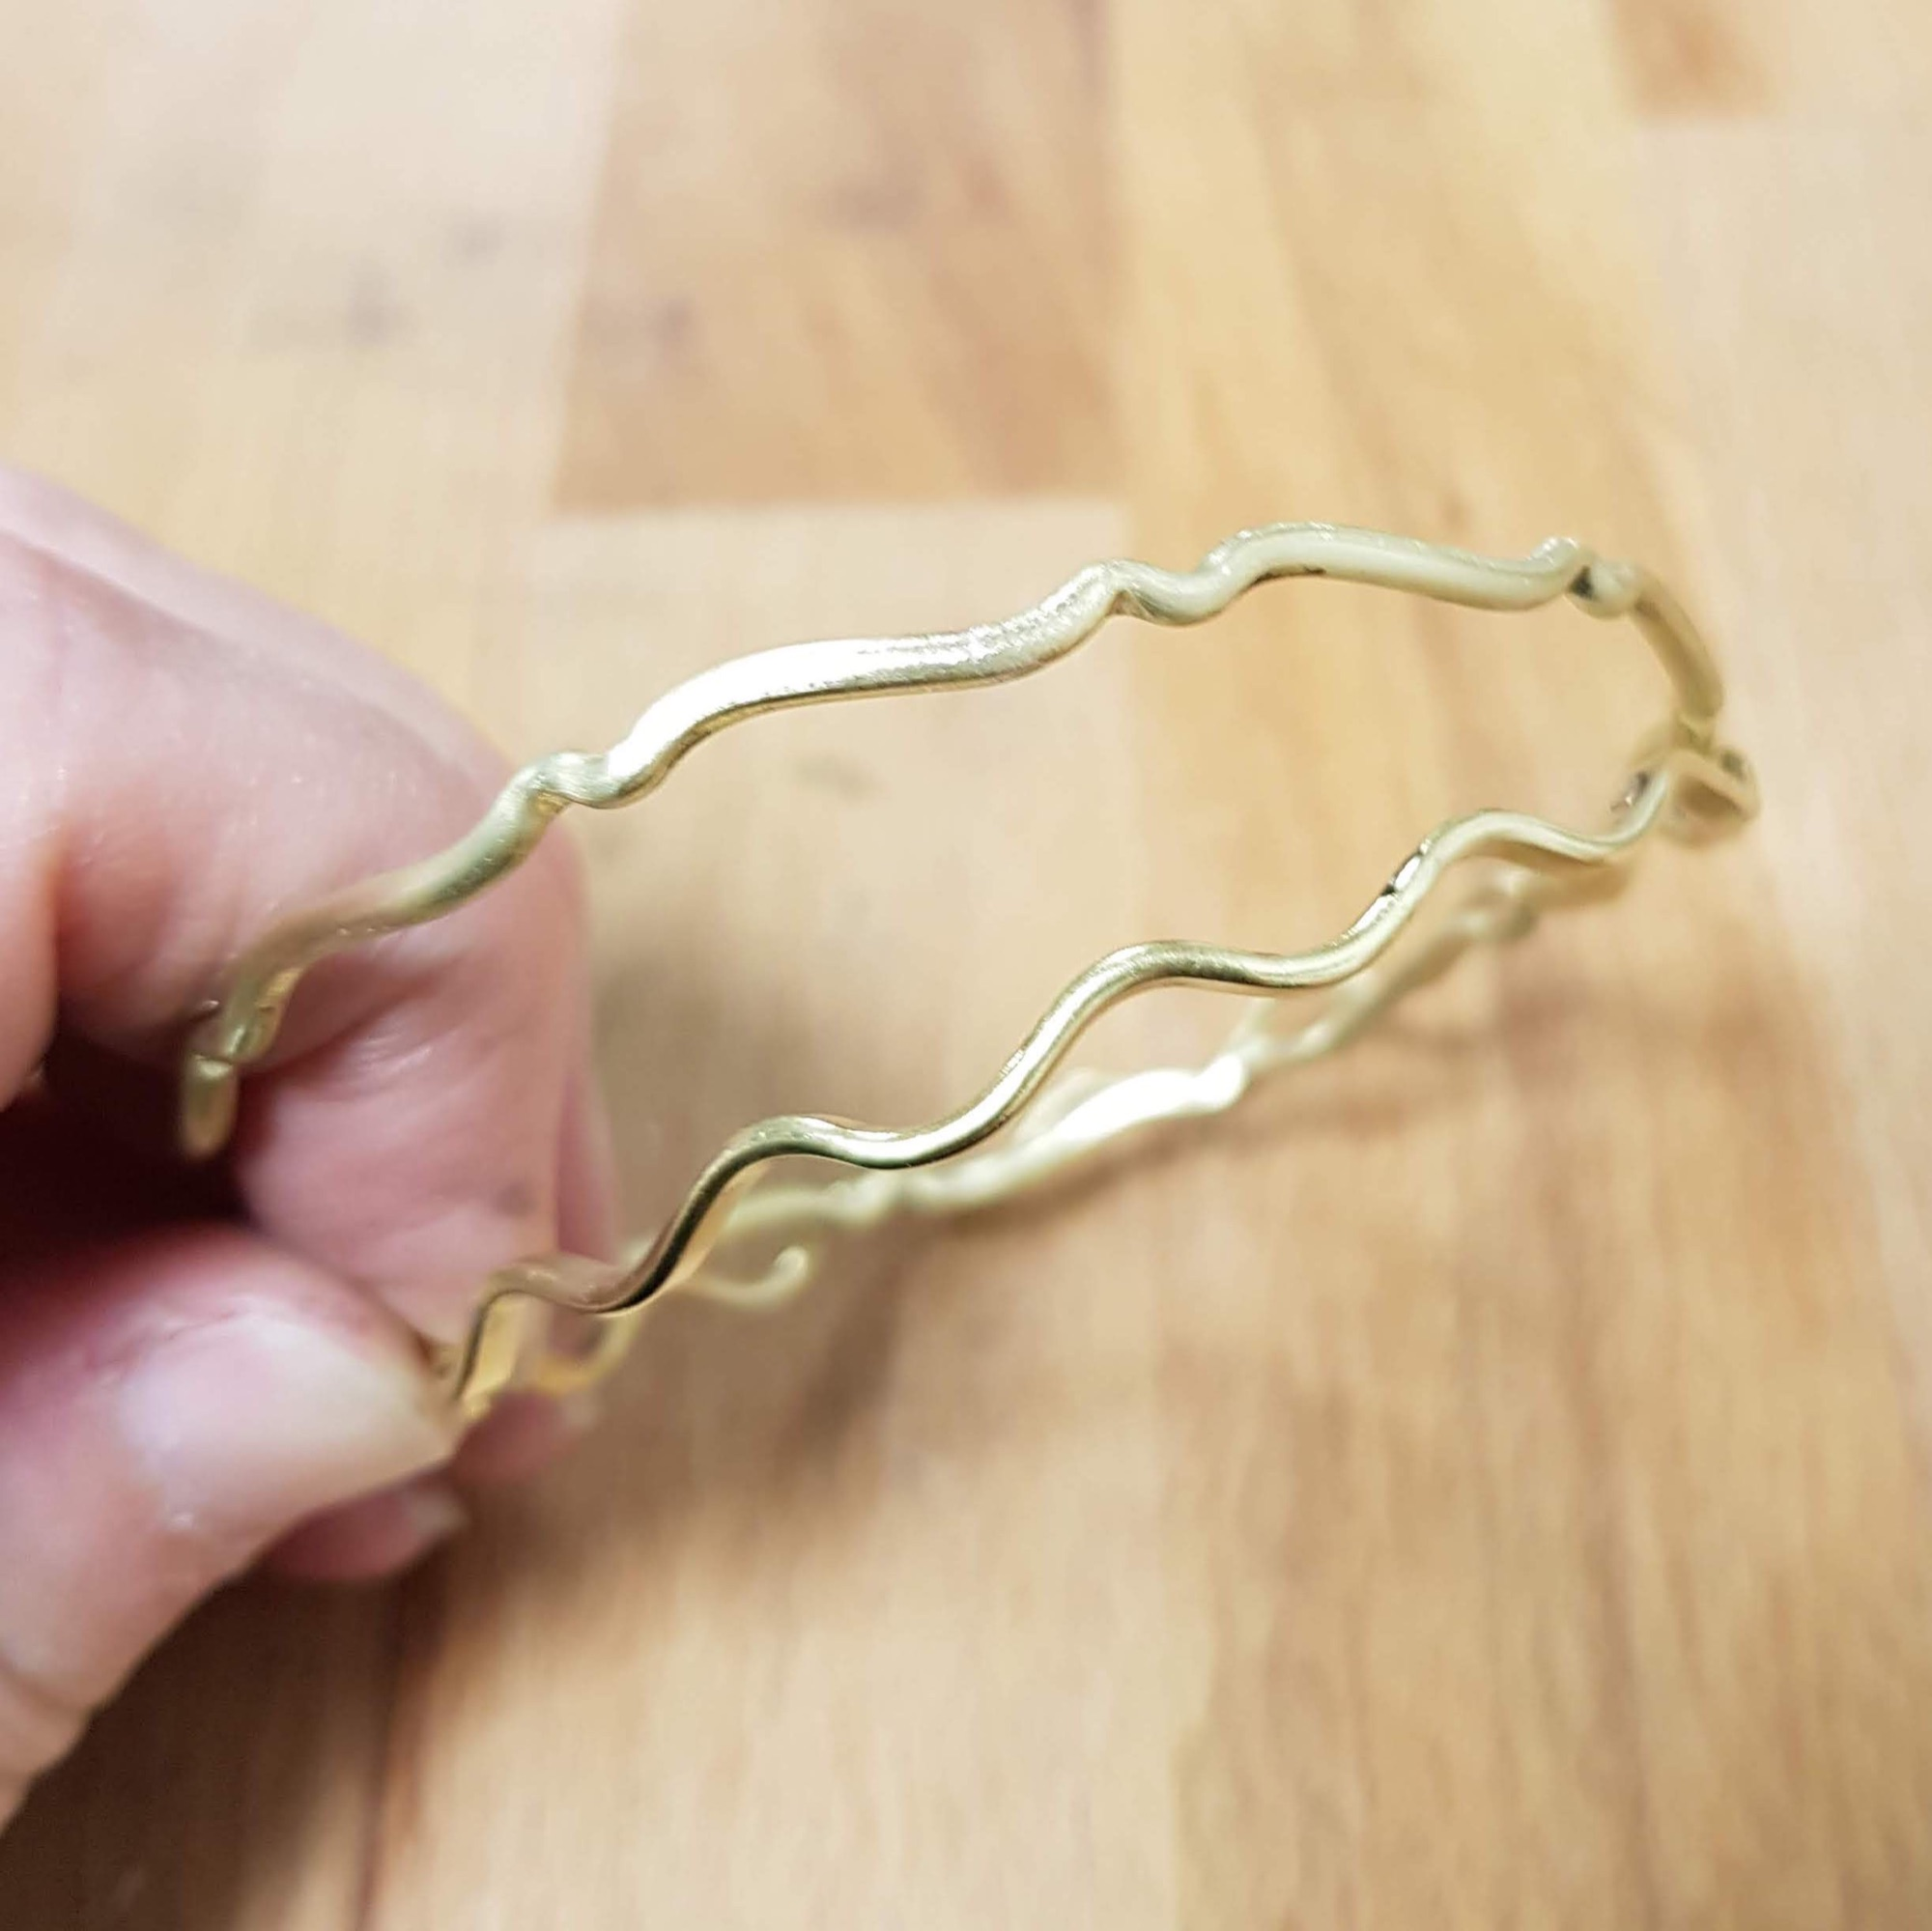 Learn how to make a bangle jewellery workshop